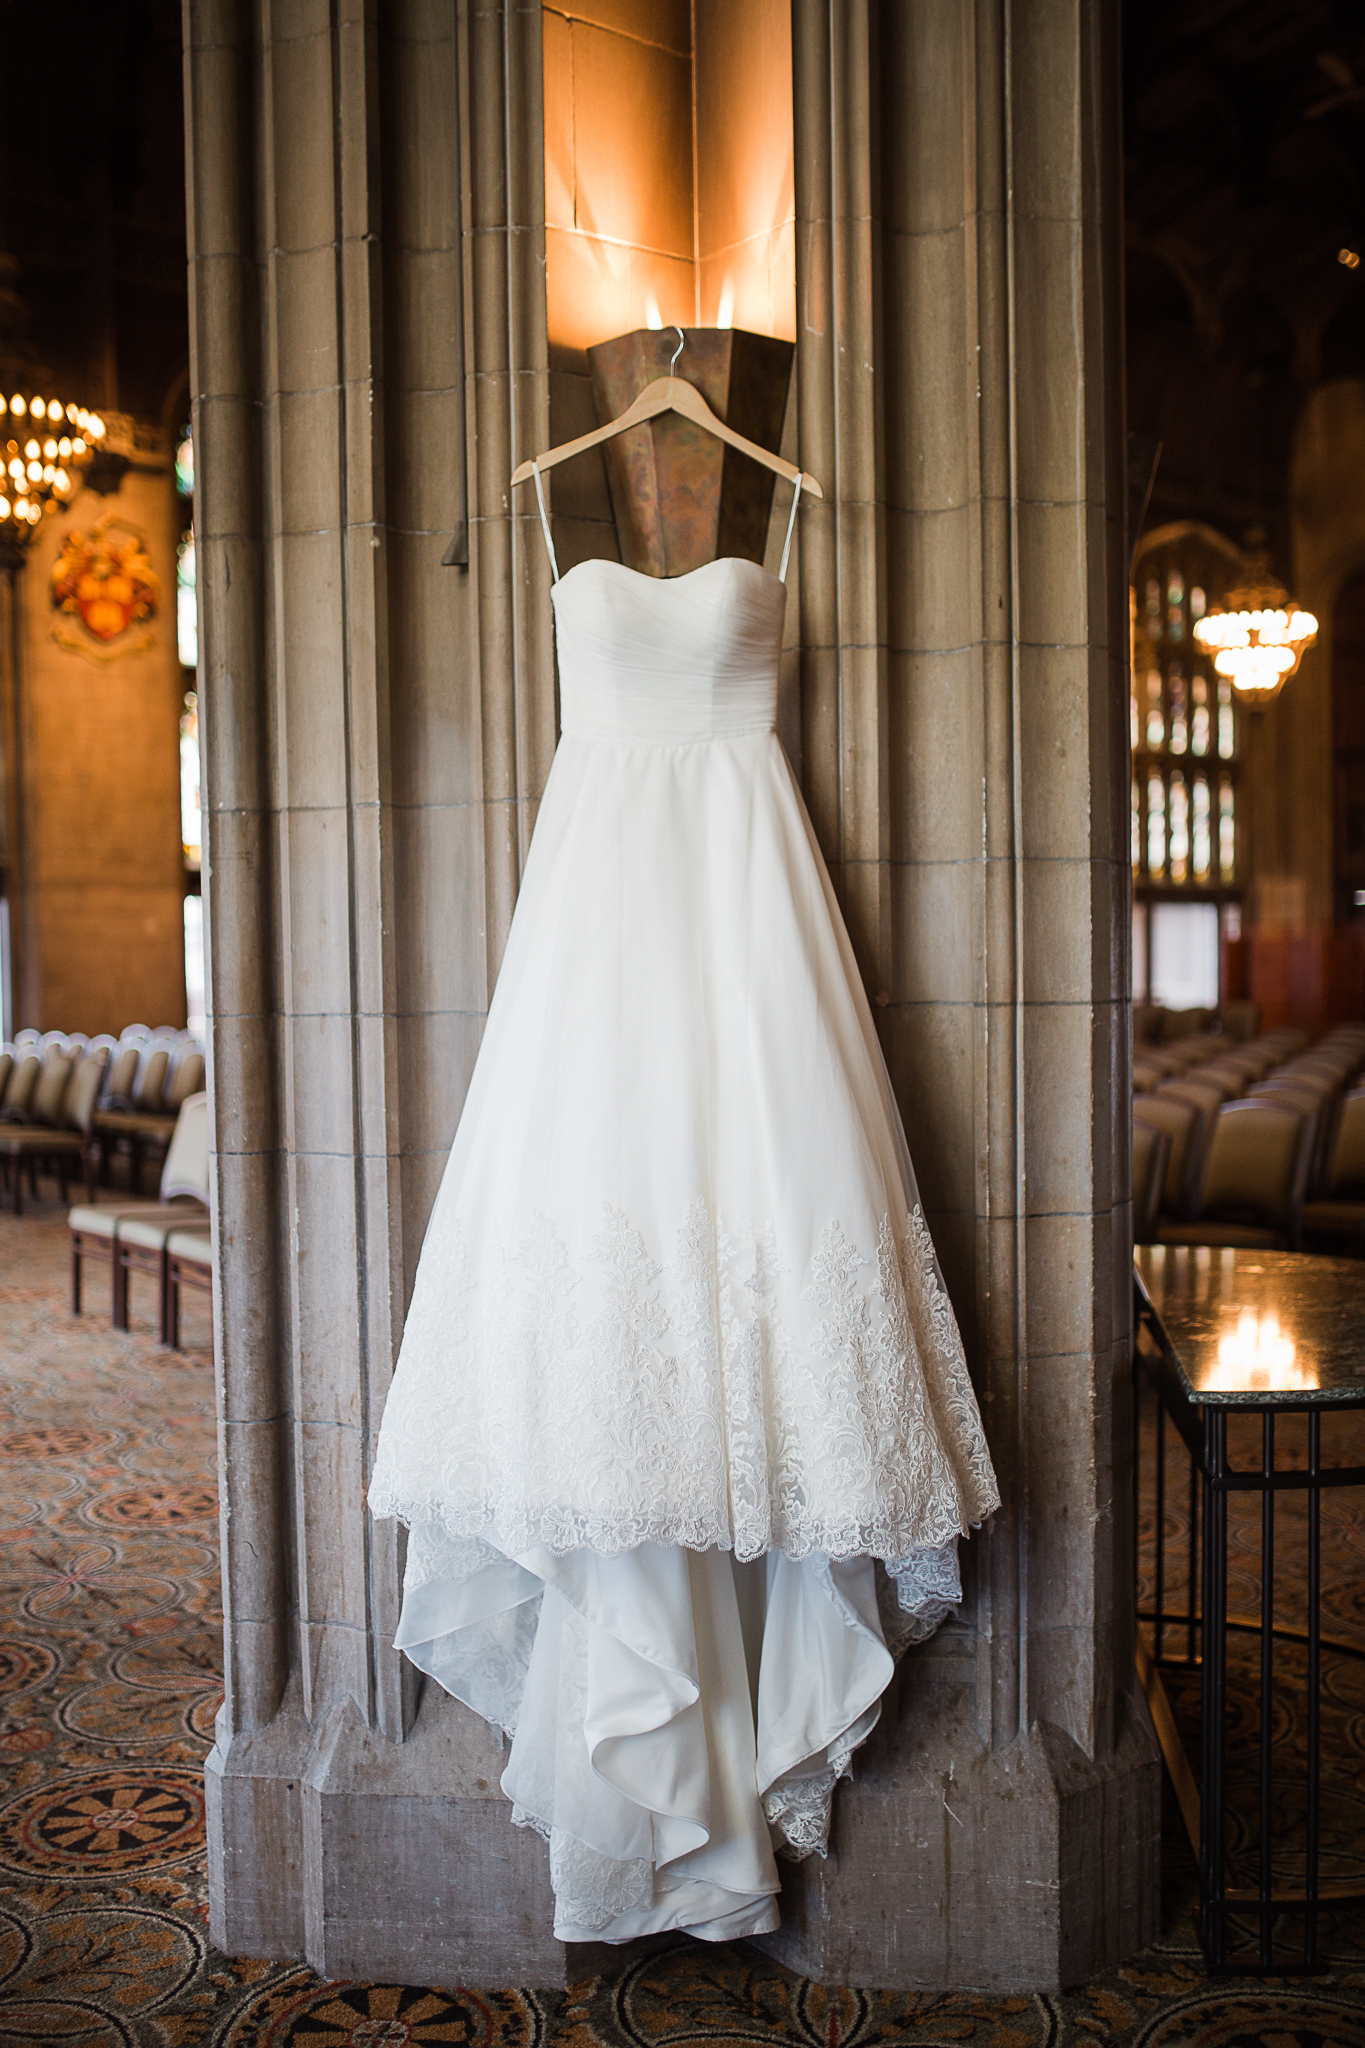 detail shot of brides dress at ceremony location